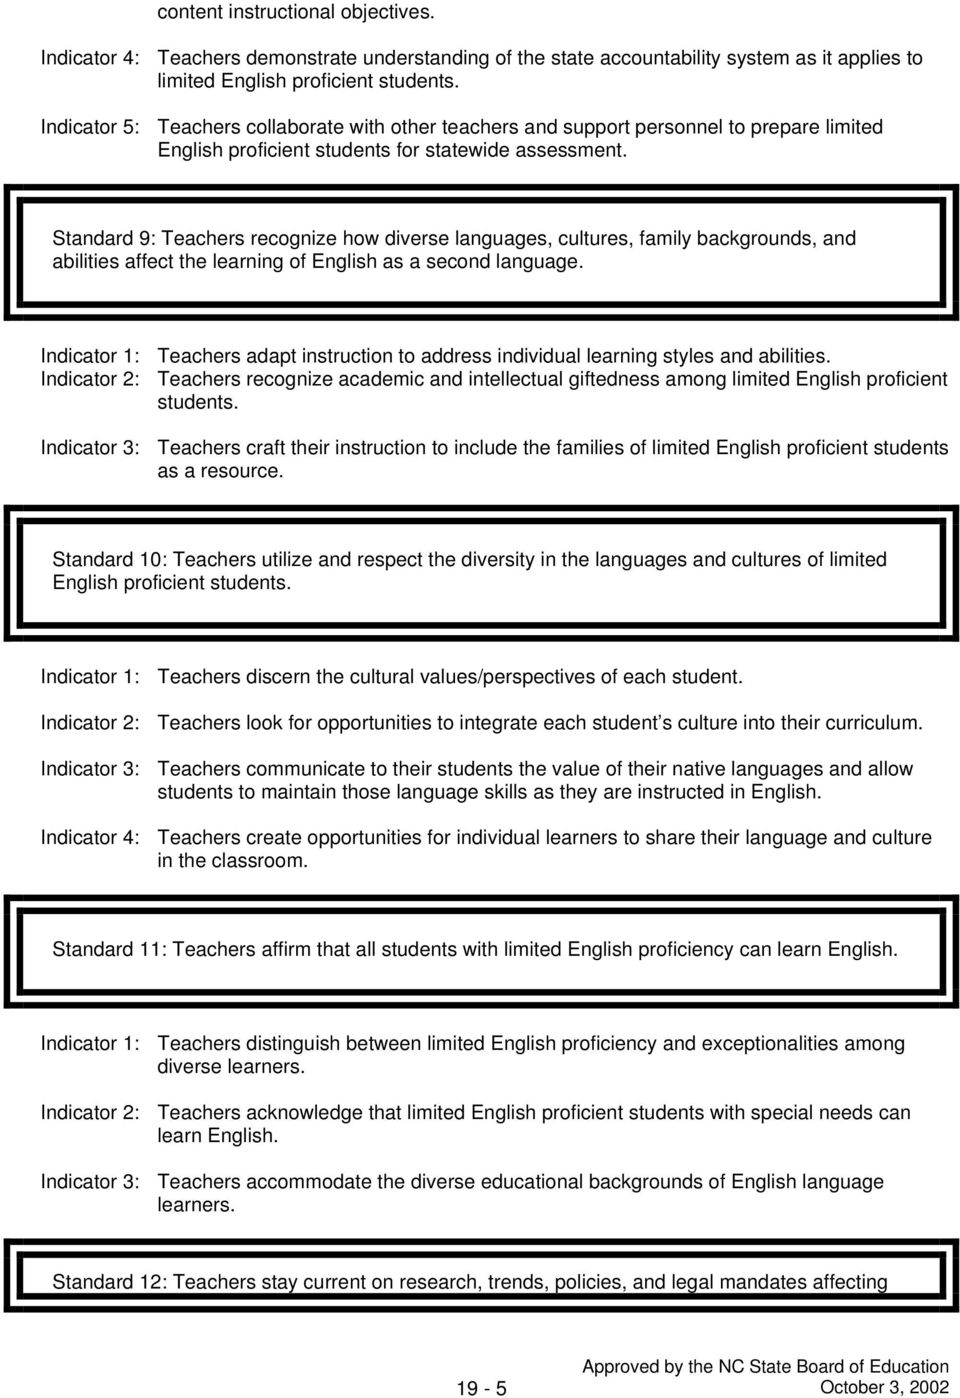 Standard 9: Teachers recognize how diverse languages, cultures, family backgrounds, and abilities affect the learning of English as a second language.